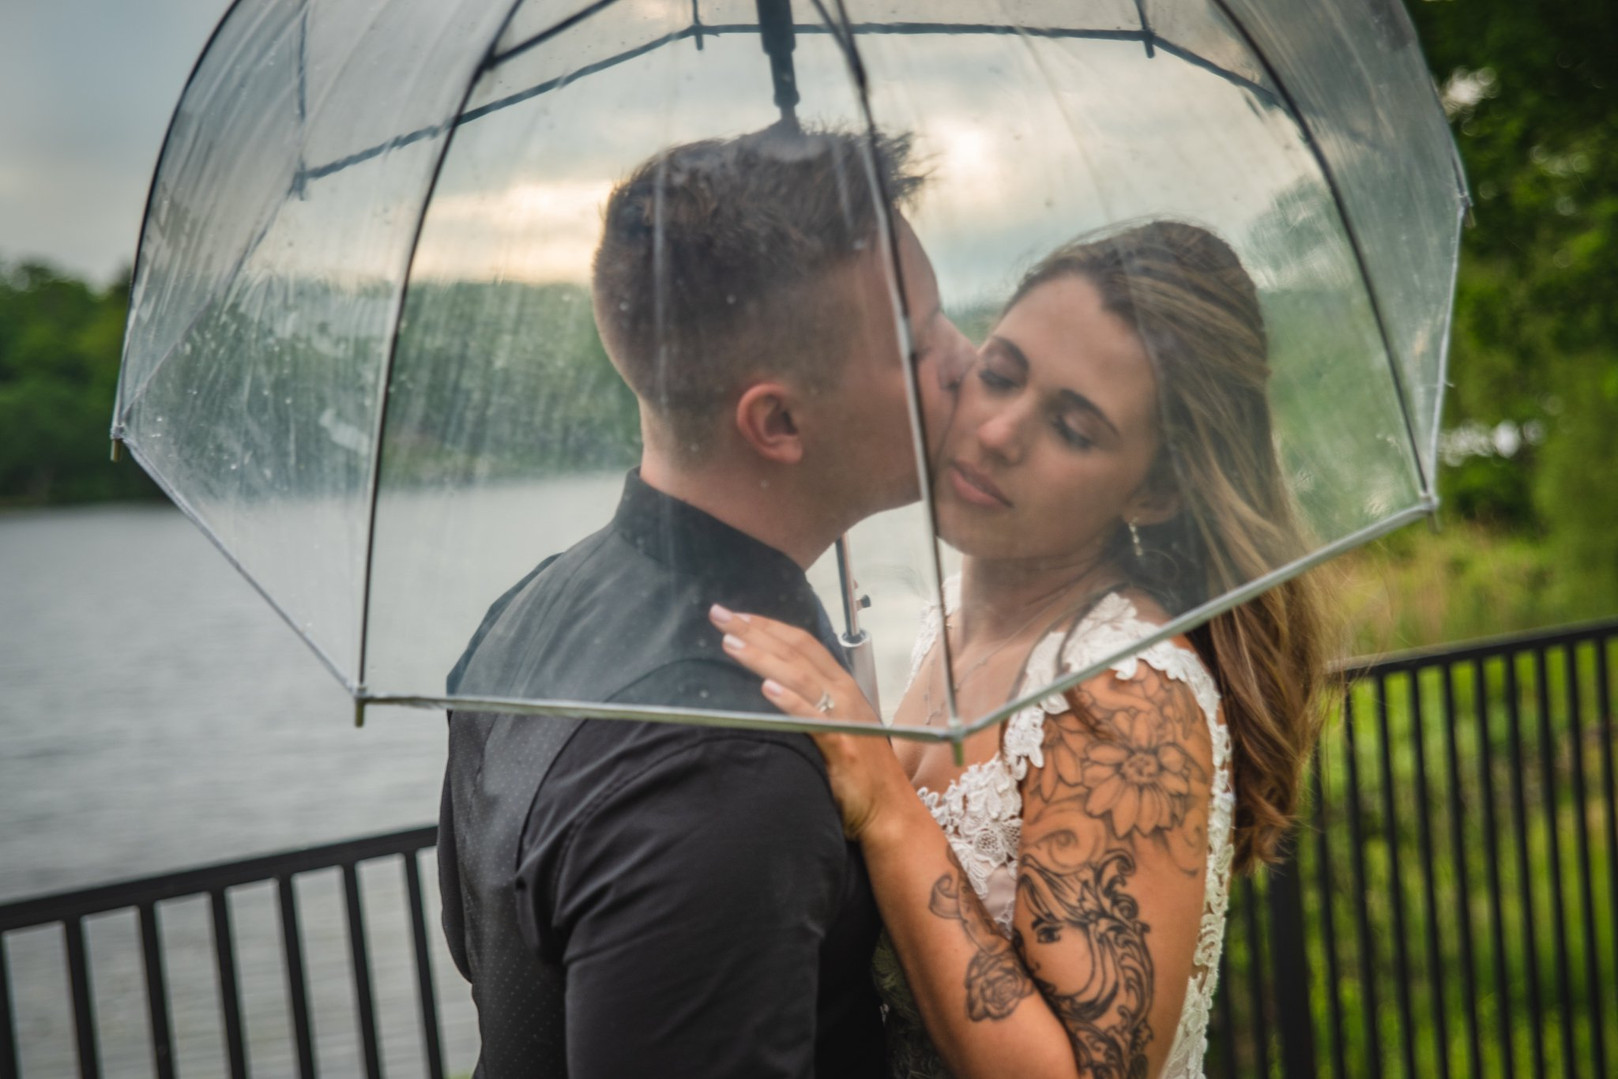 bride and groom kissing under an umbrella in the rain - CT wedding photos